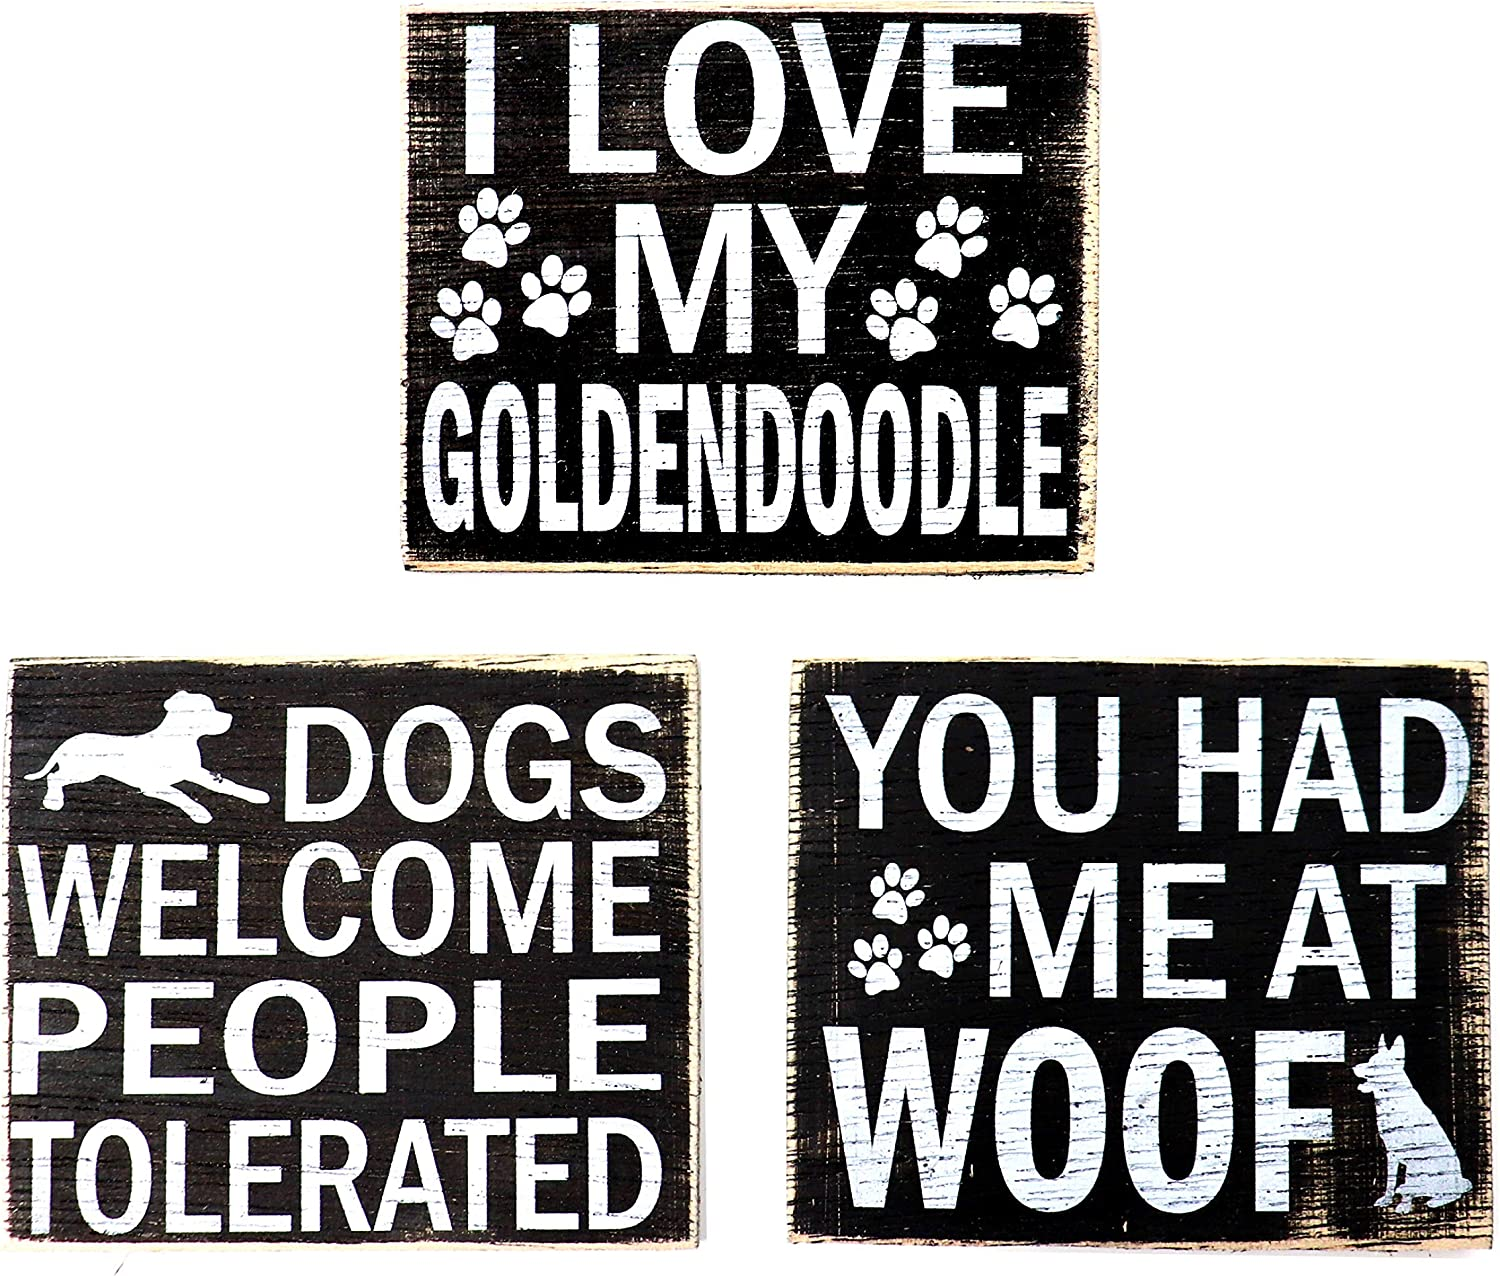 JennyGems - Goldendoodle Refrigerator Magnet - Set of 3 - I Love My GoldenDoodle, You Had Me at Woof, Dogs Welcome People Tolerated, Goldendoodle Gifts, Wood, Rustic, Shabby Chic